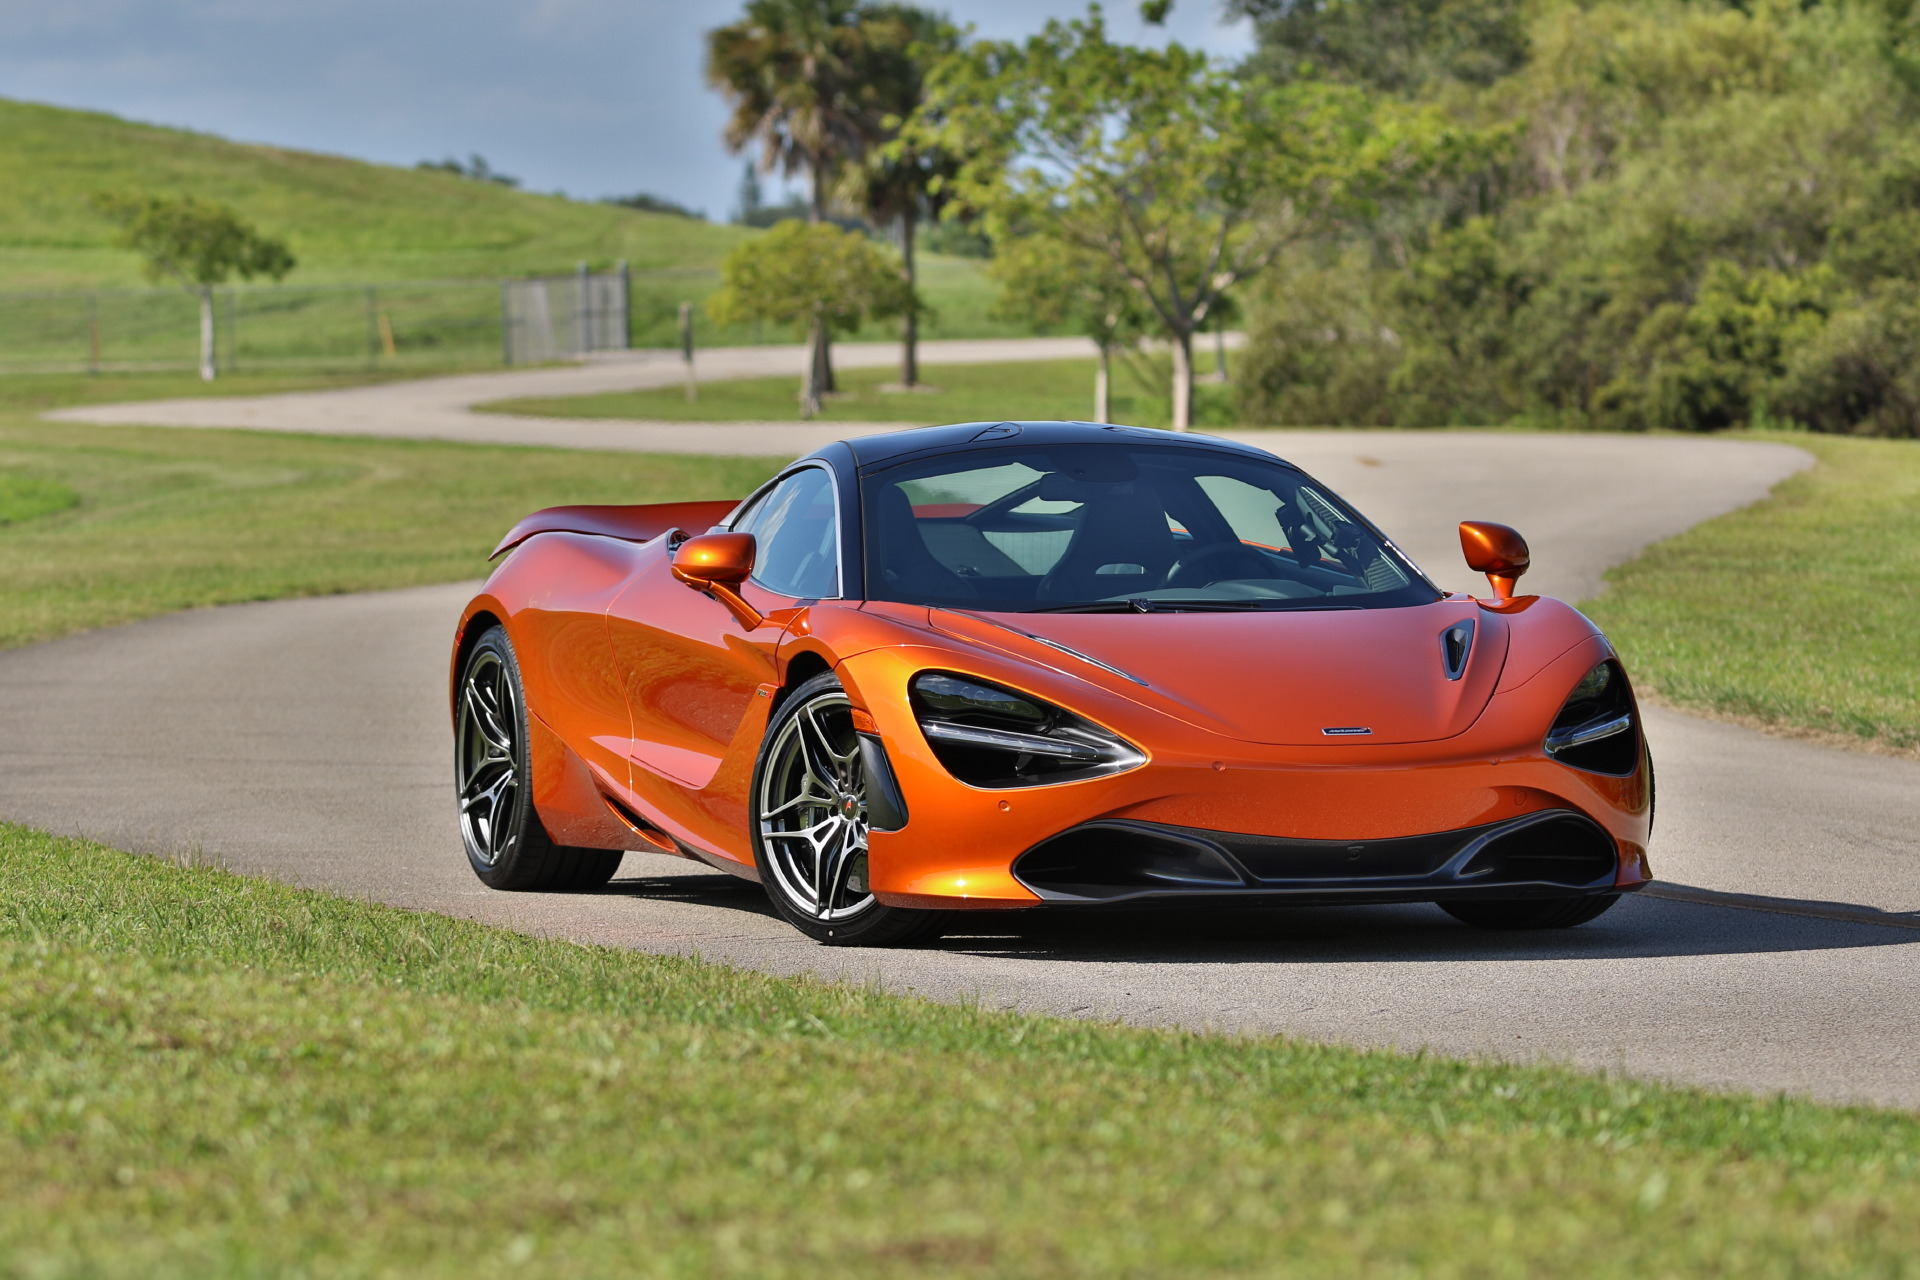 McLaren 720S delivery, first drive and photo/drone gallery   DragTimes.com Drag Racing, Fast ...